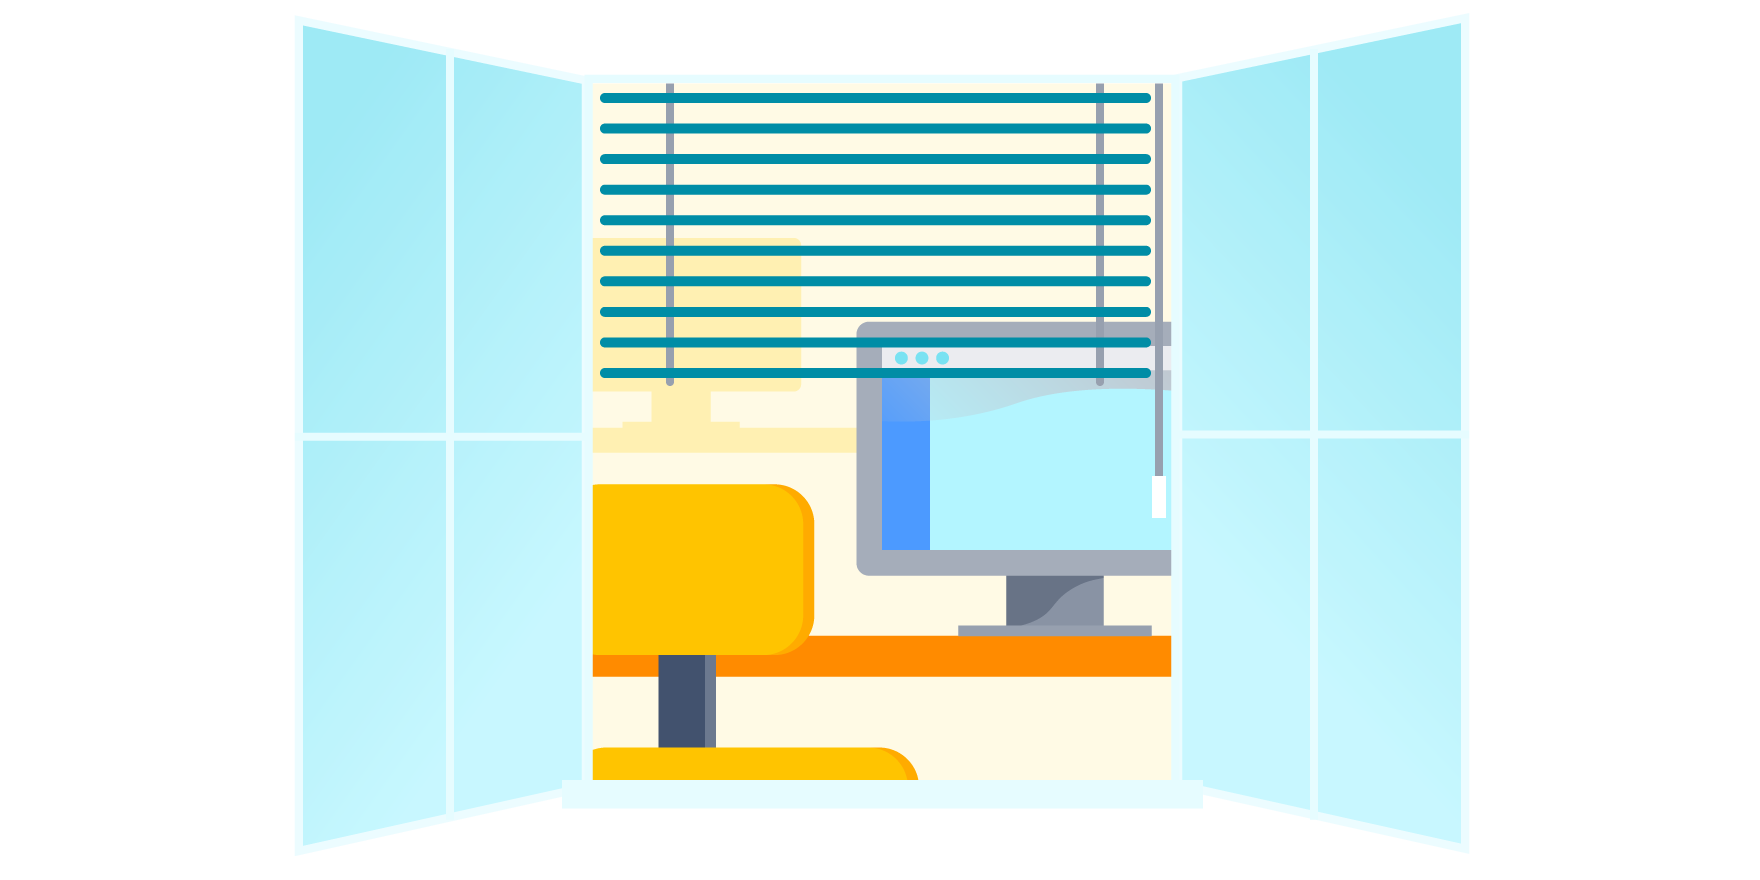 Create transparent png. Simple ways to